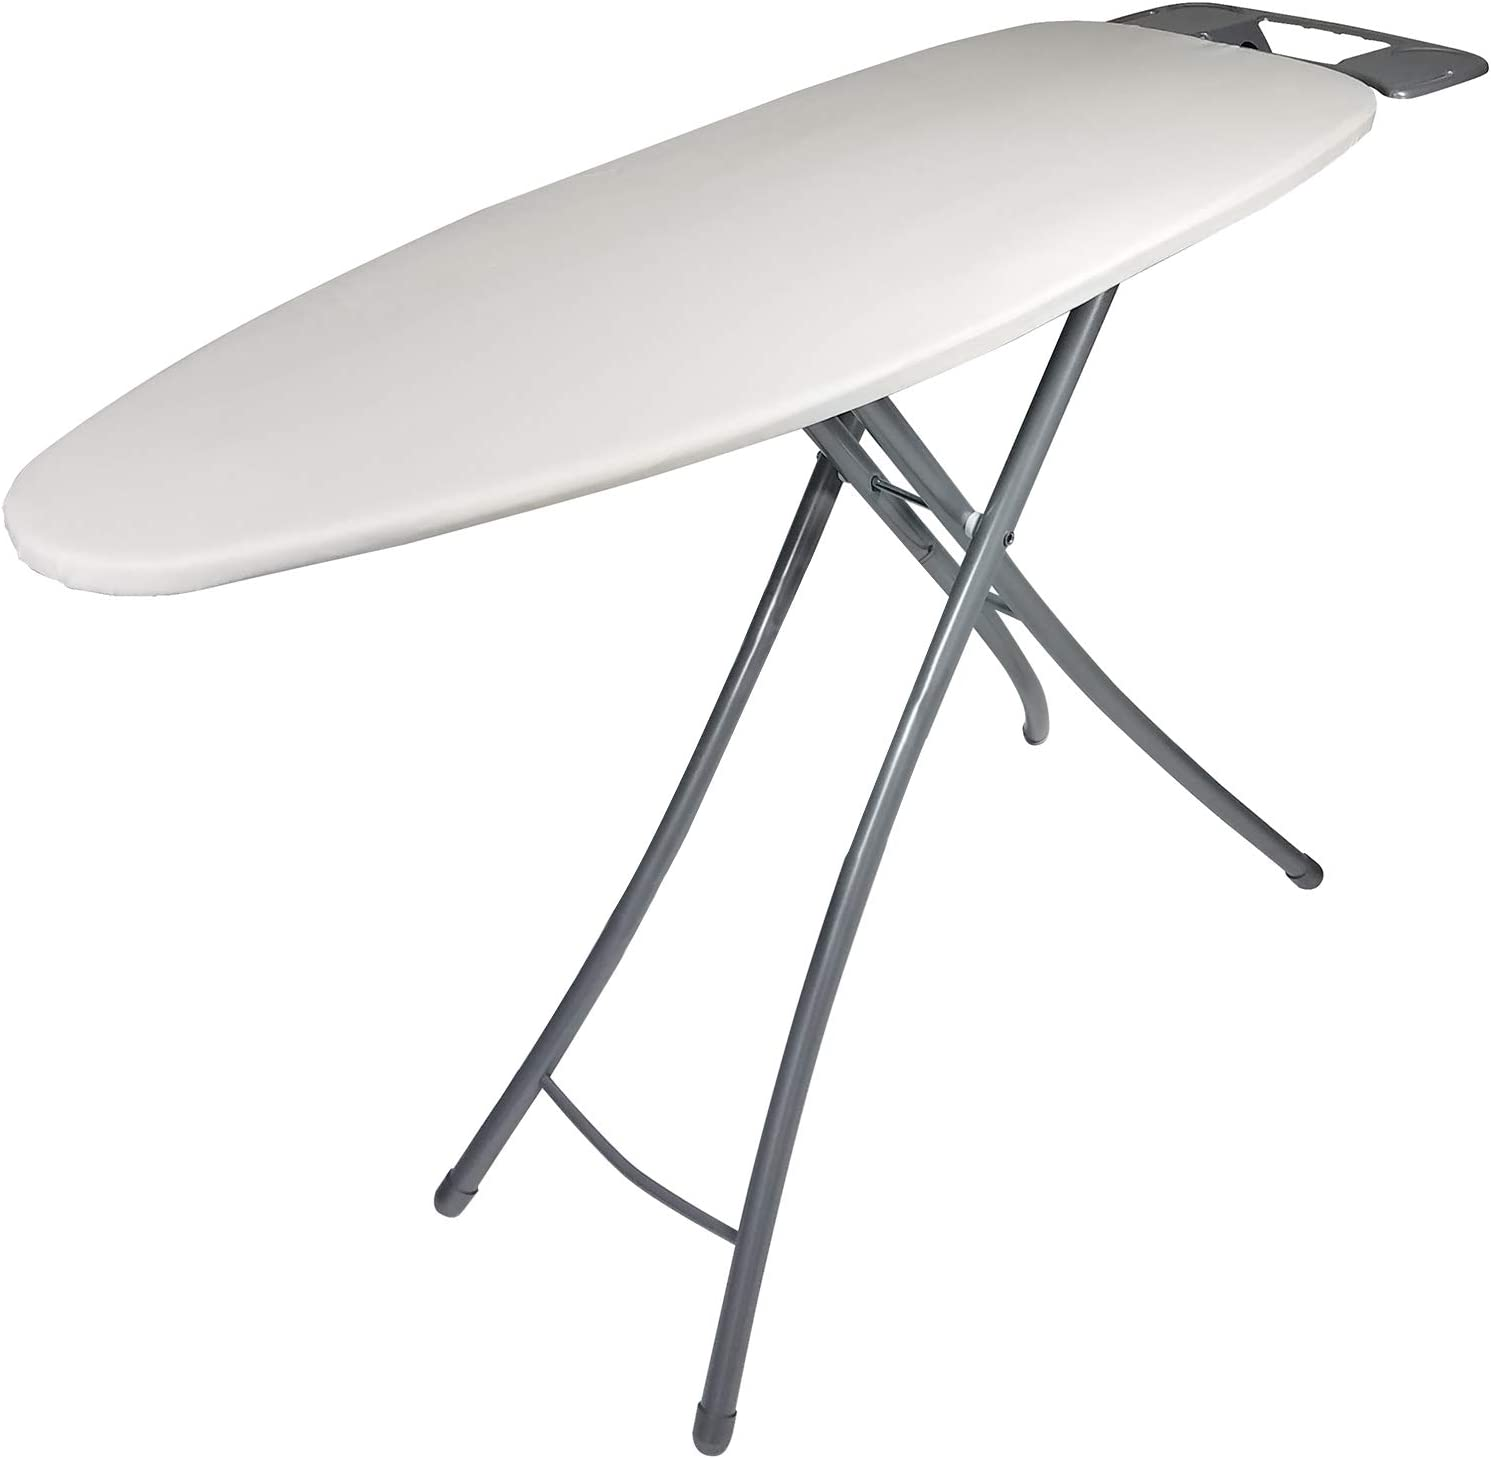 Homz Professional Wide Steel Top Ironing Board Light Tan Cover Amazon Ca Home Kitchen